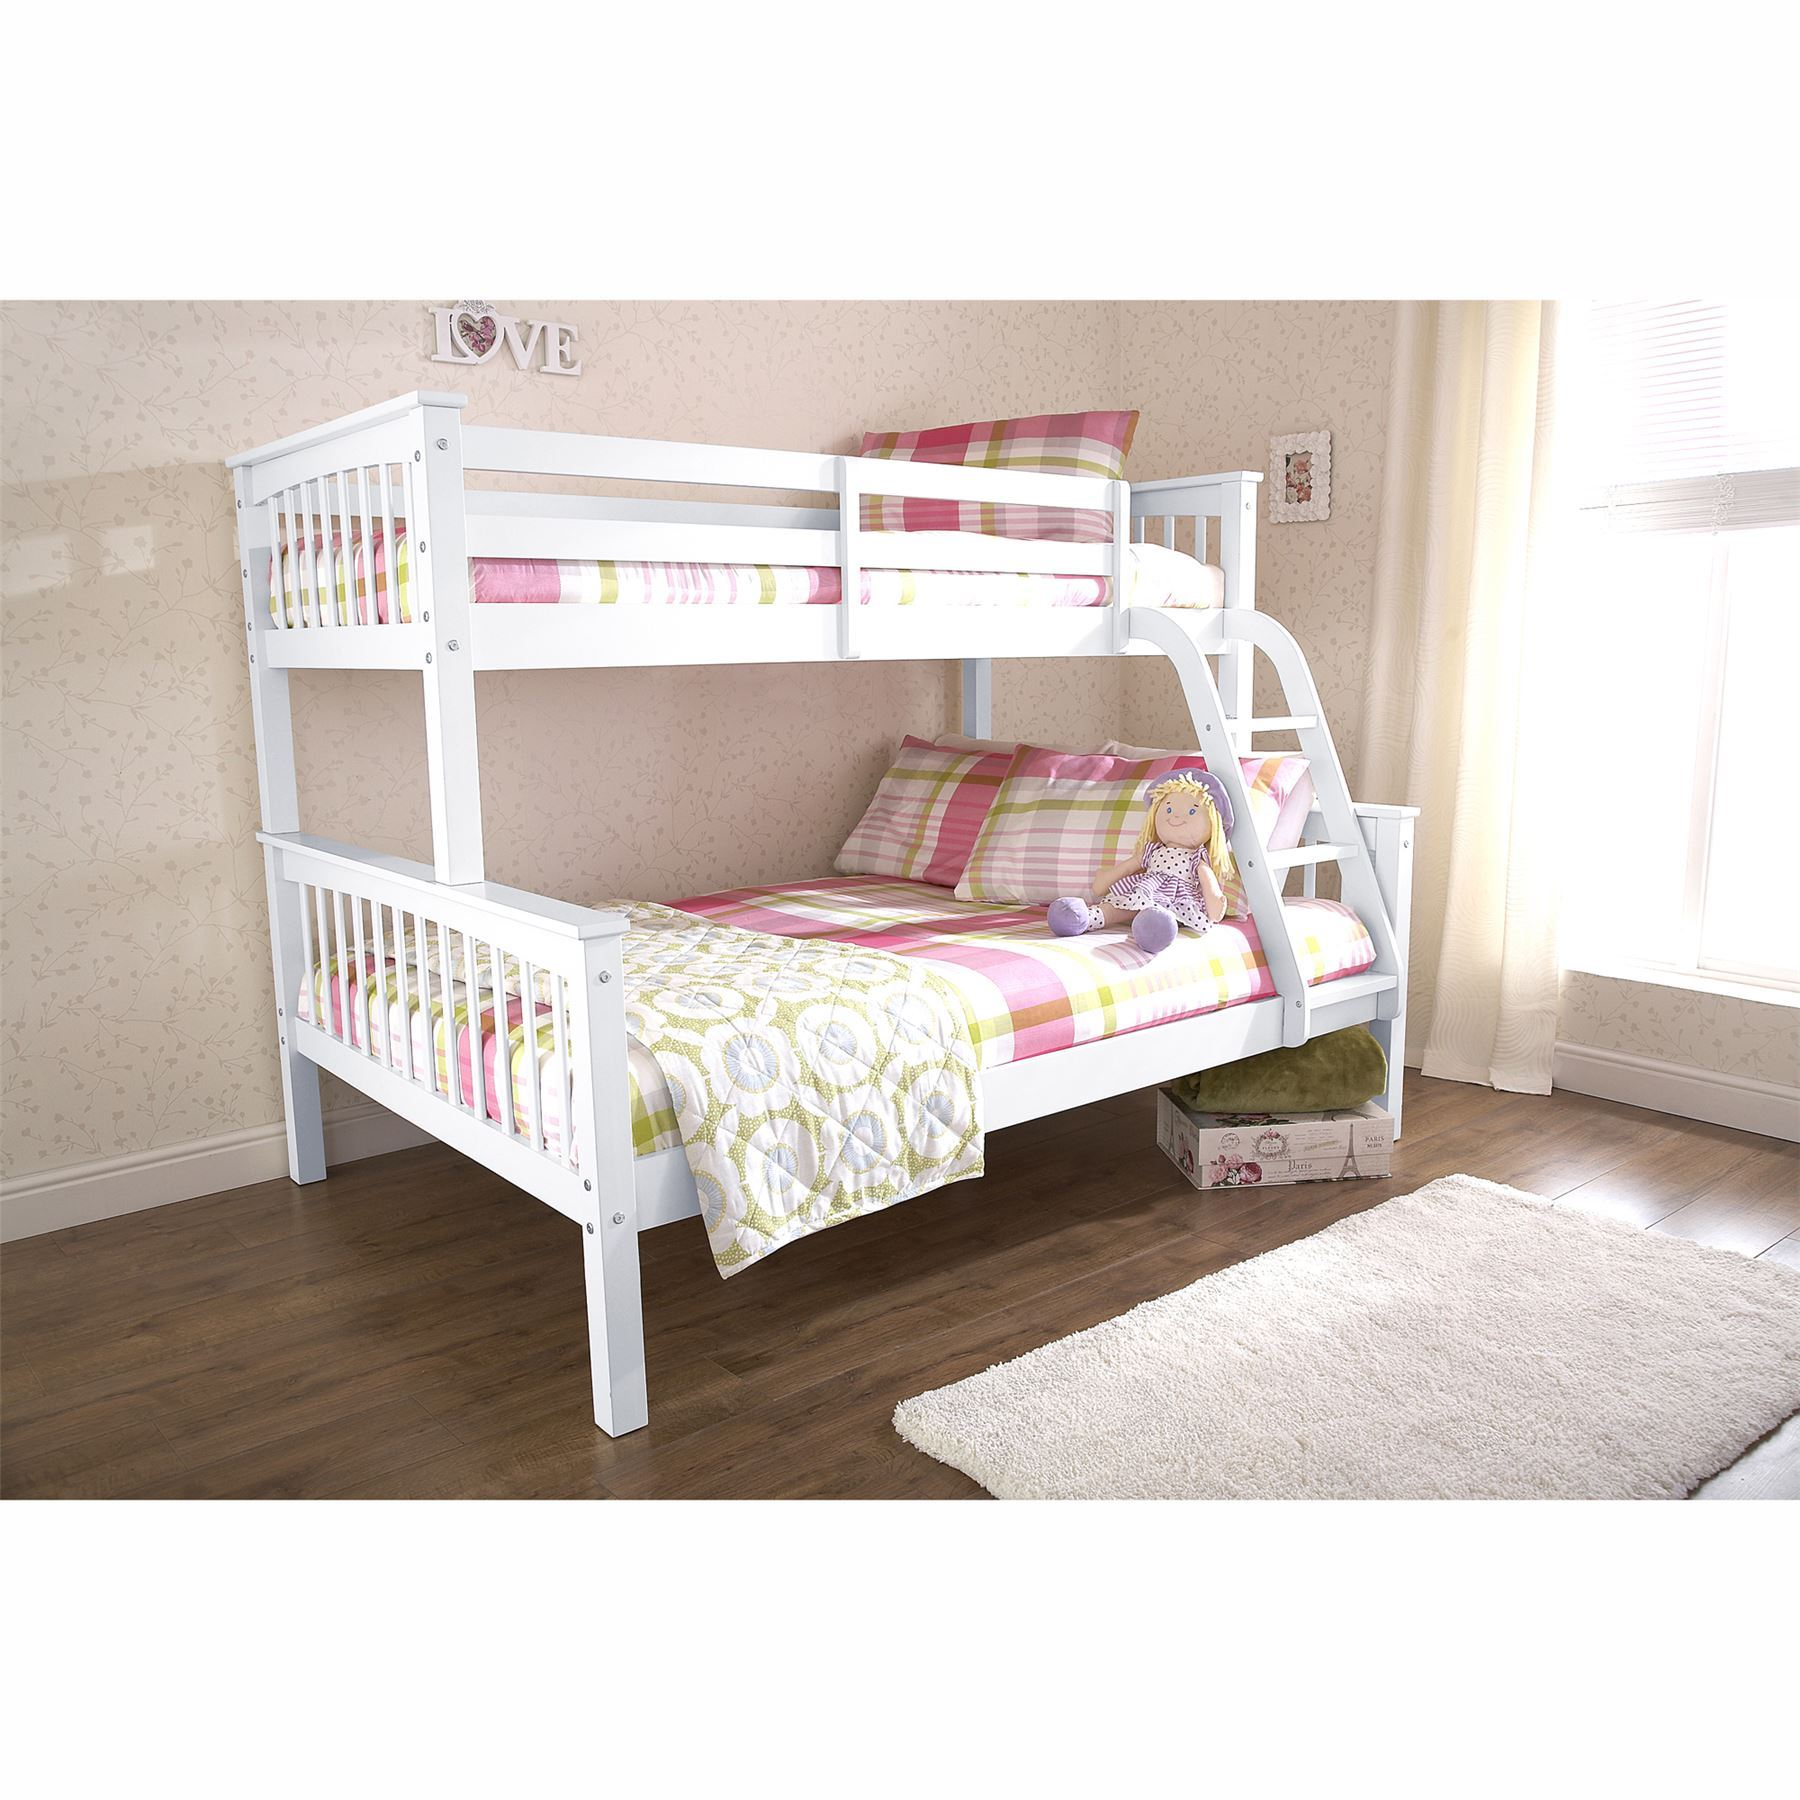 Novaro trio white bunk bed frames 3ft single 4ft6 double for Childrens double beds